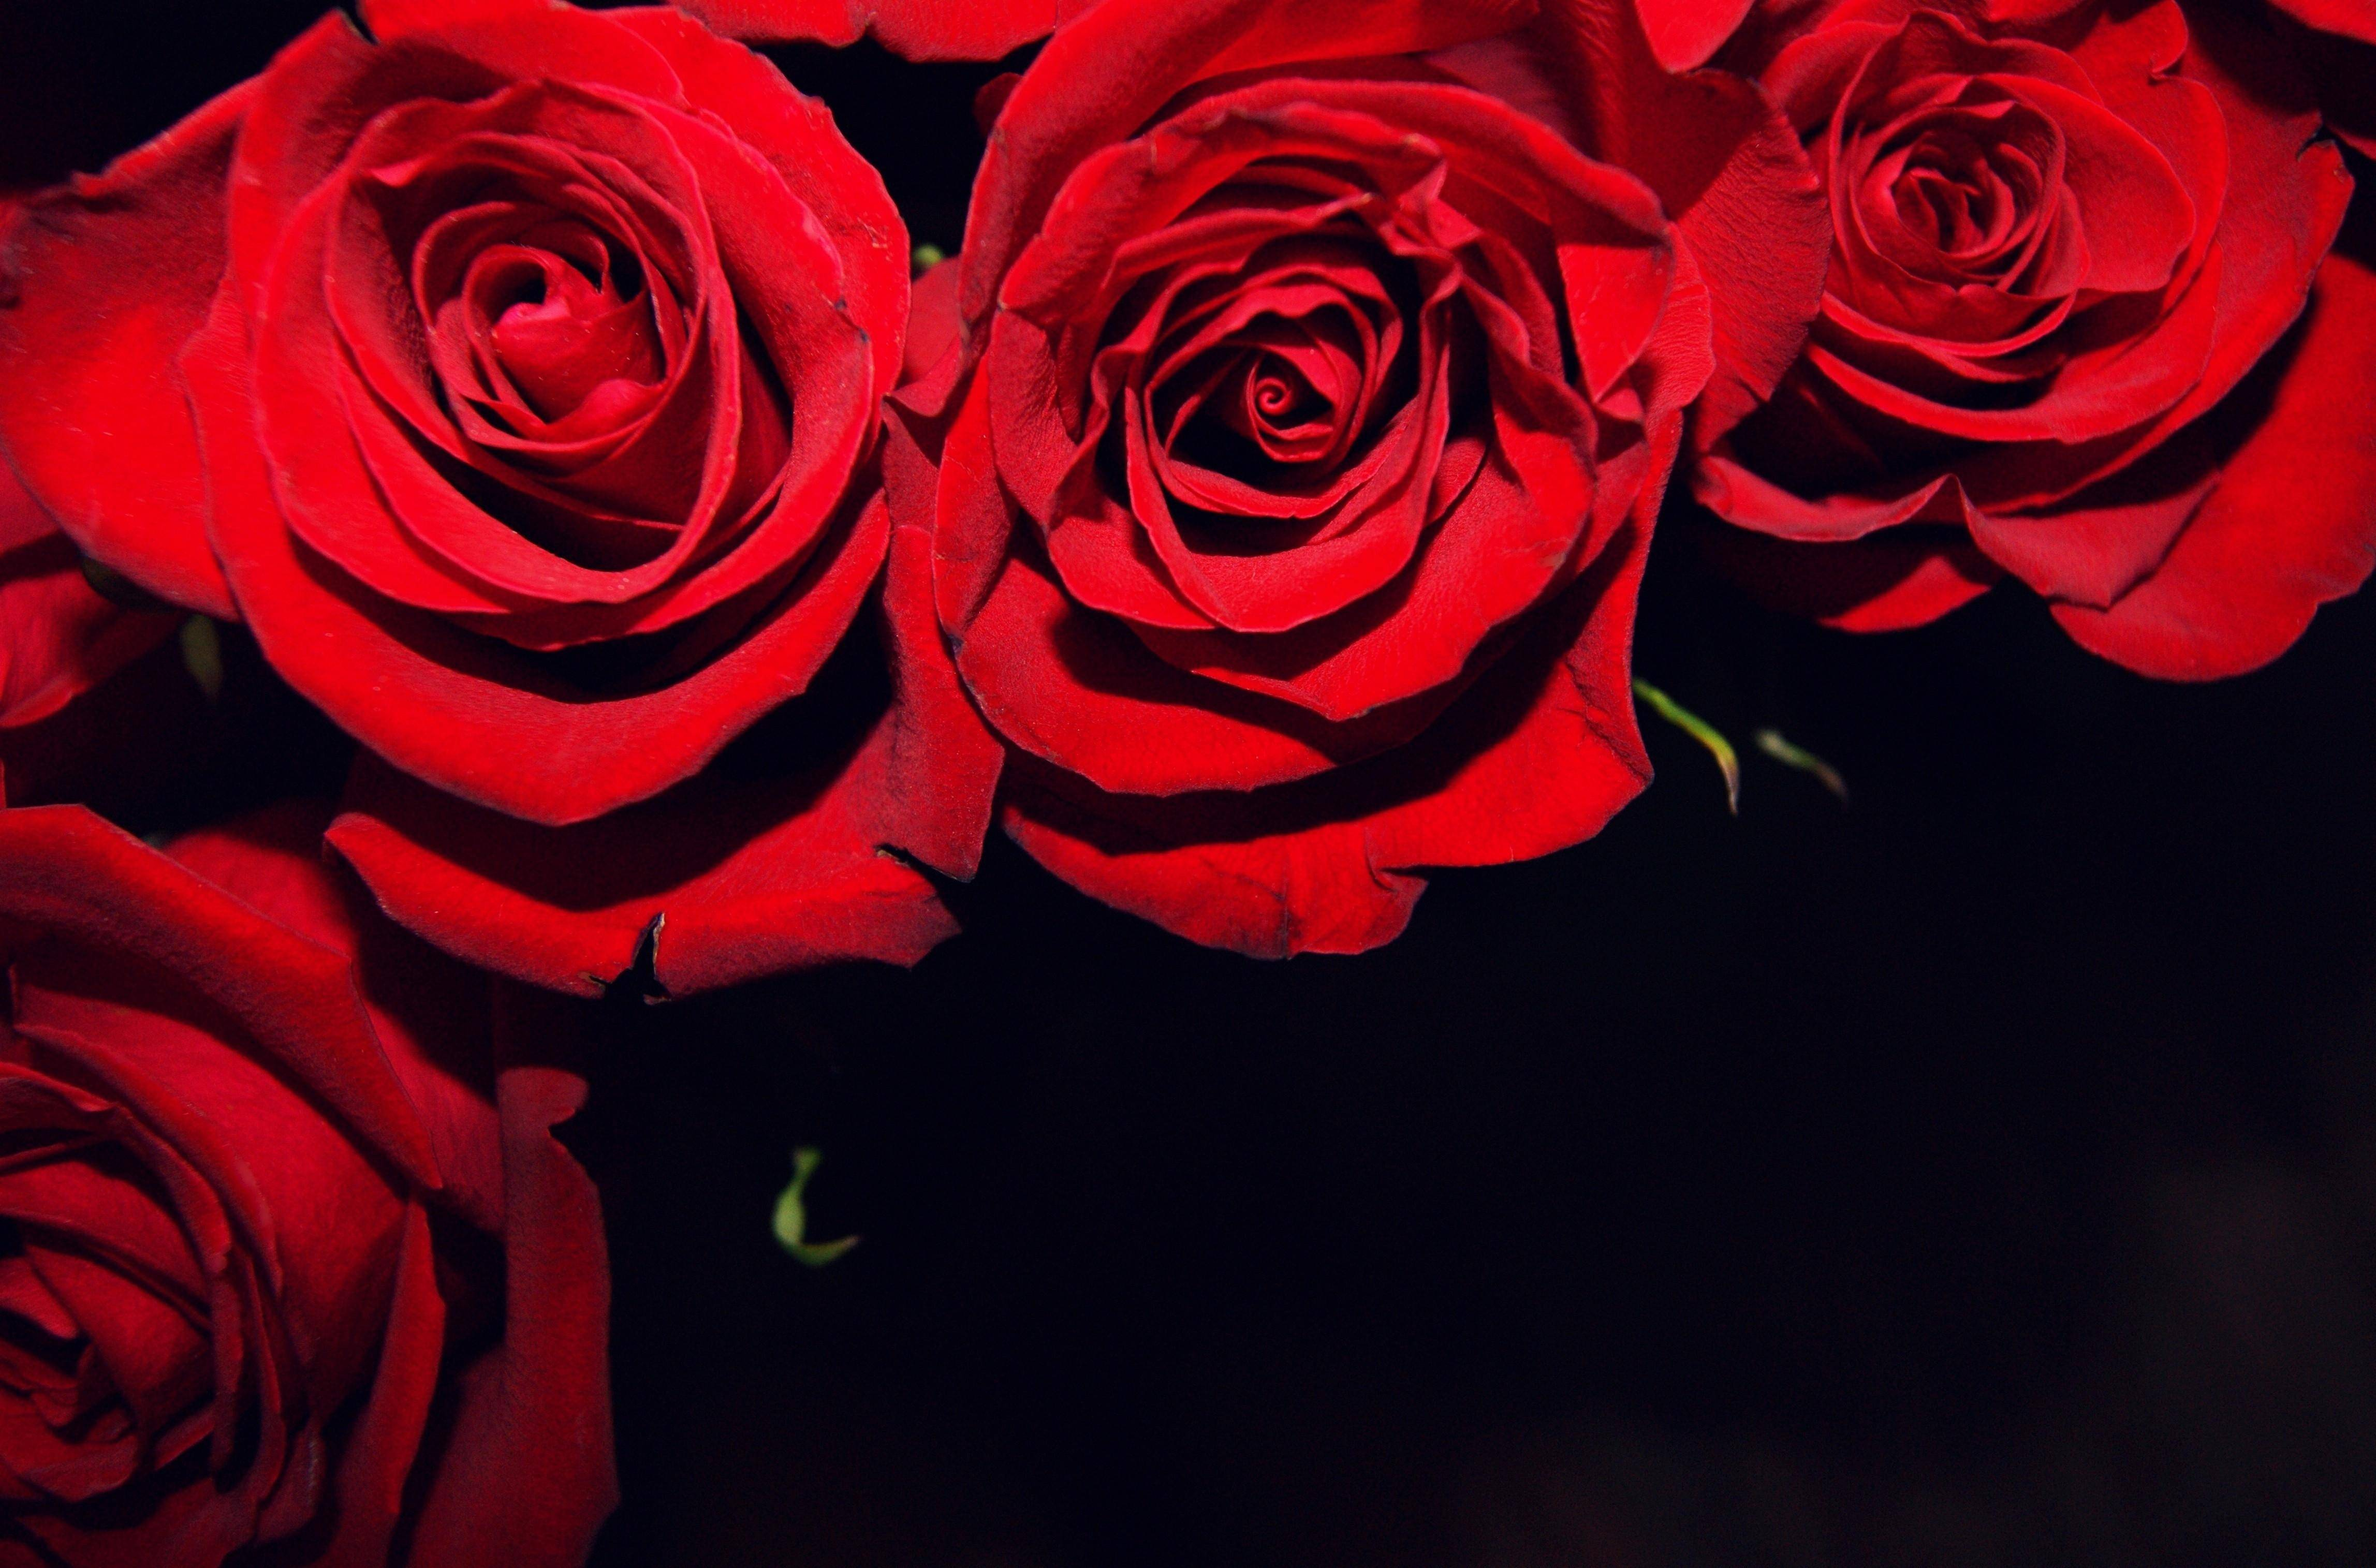 Red Roses On Black Backgrounds 4590x3030